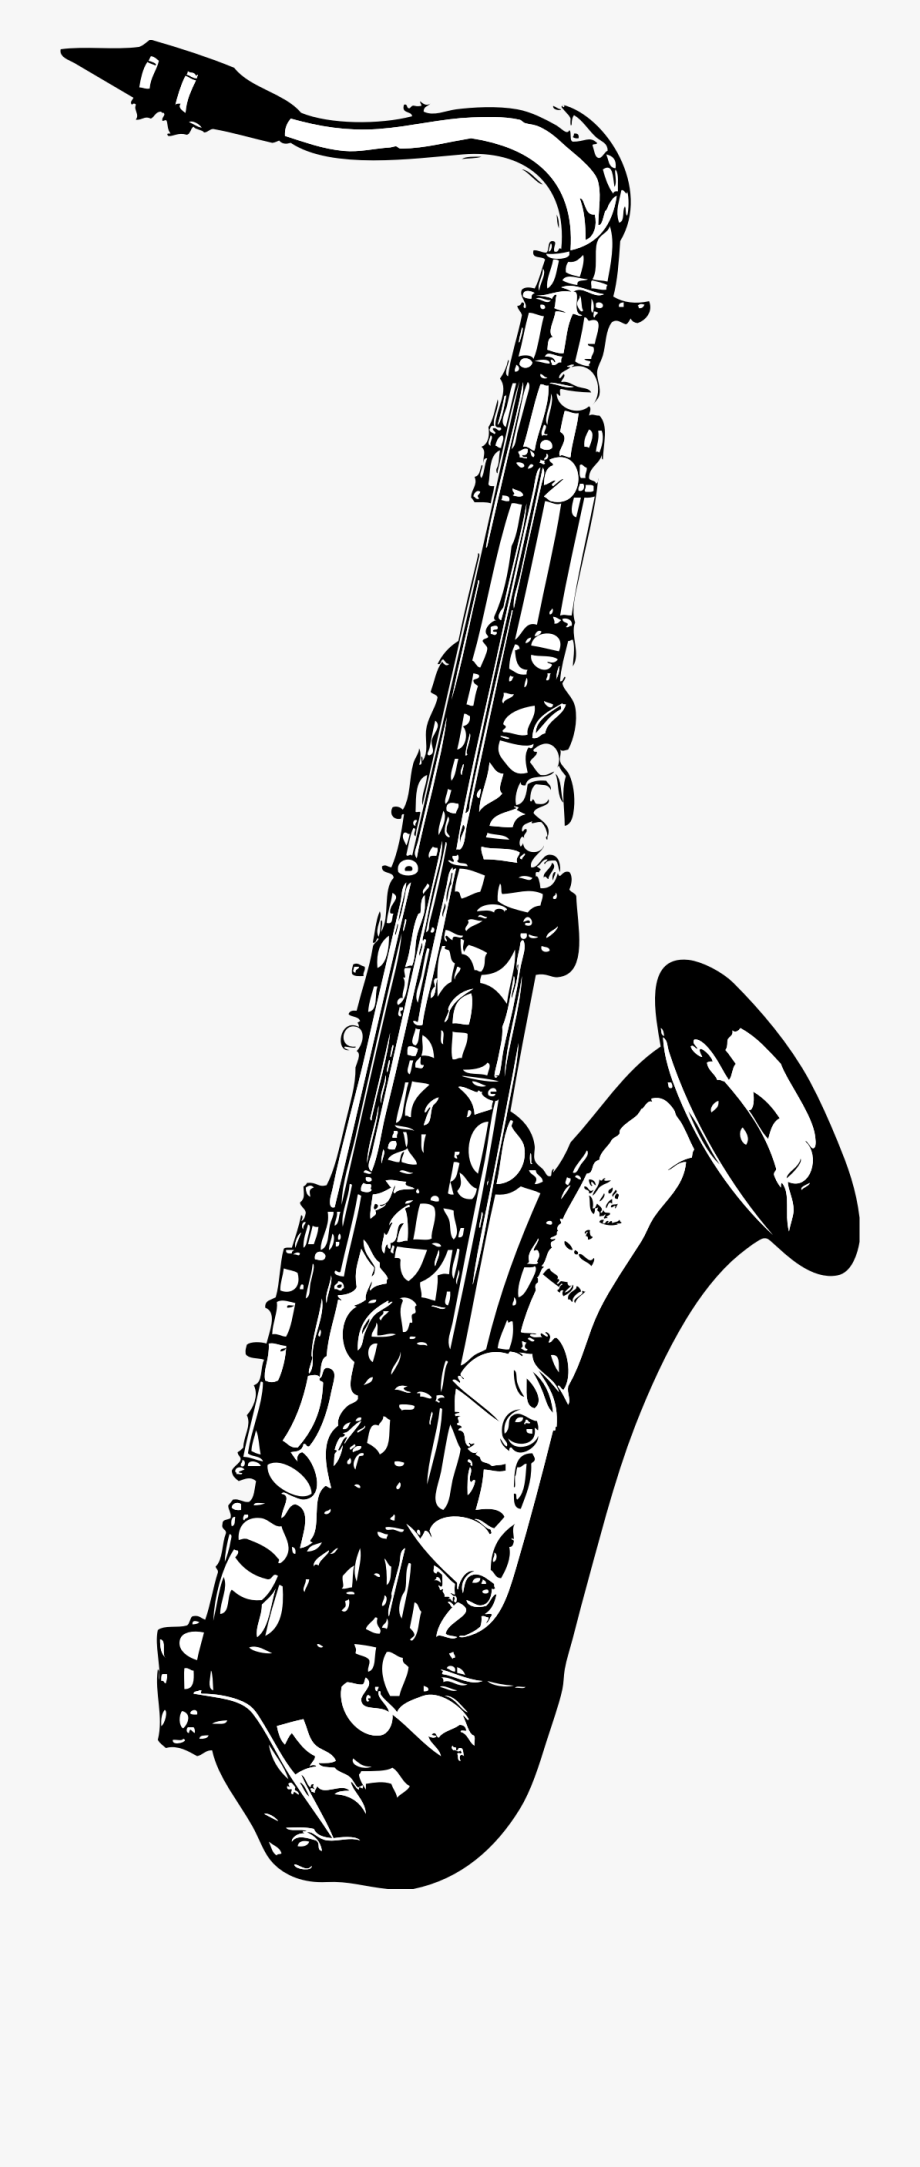 jpg library download Saxophone clipart black and white. Tenor